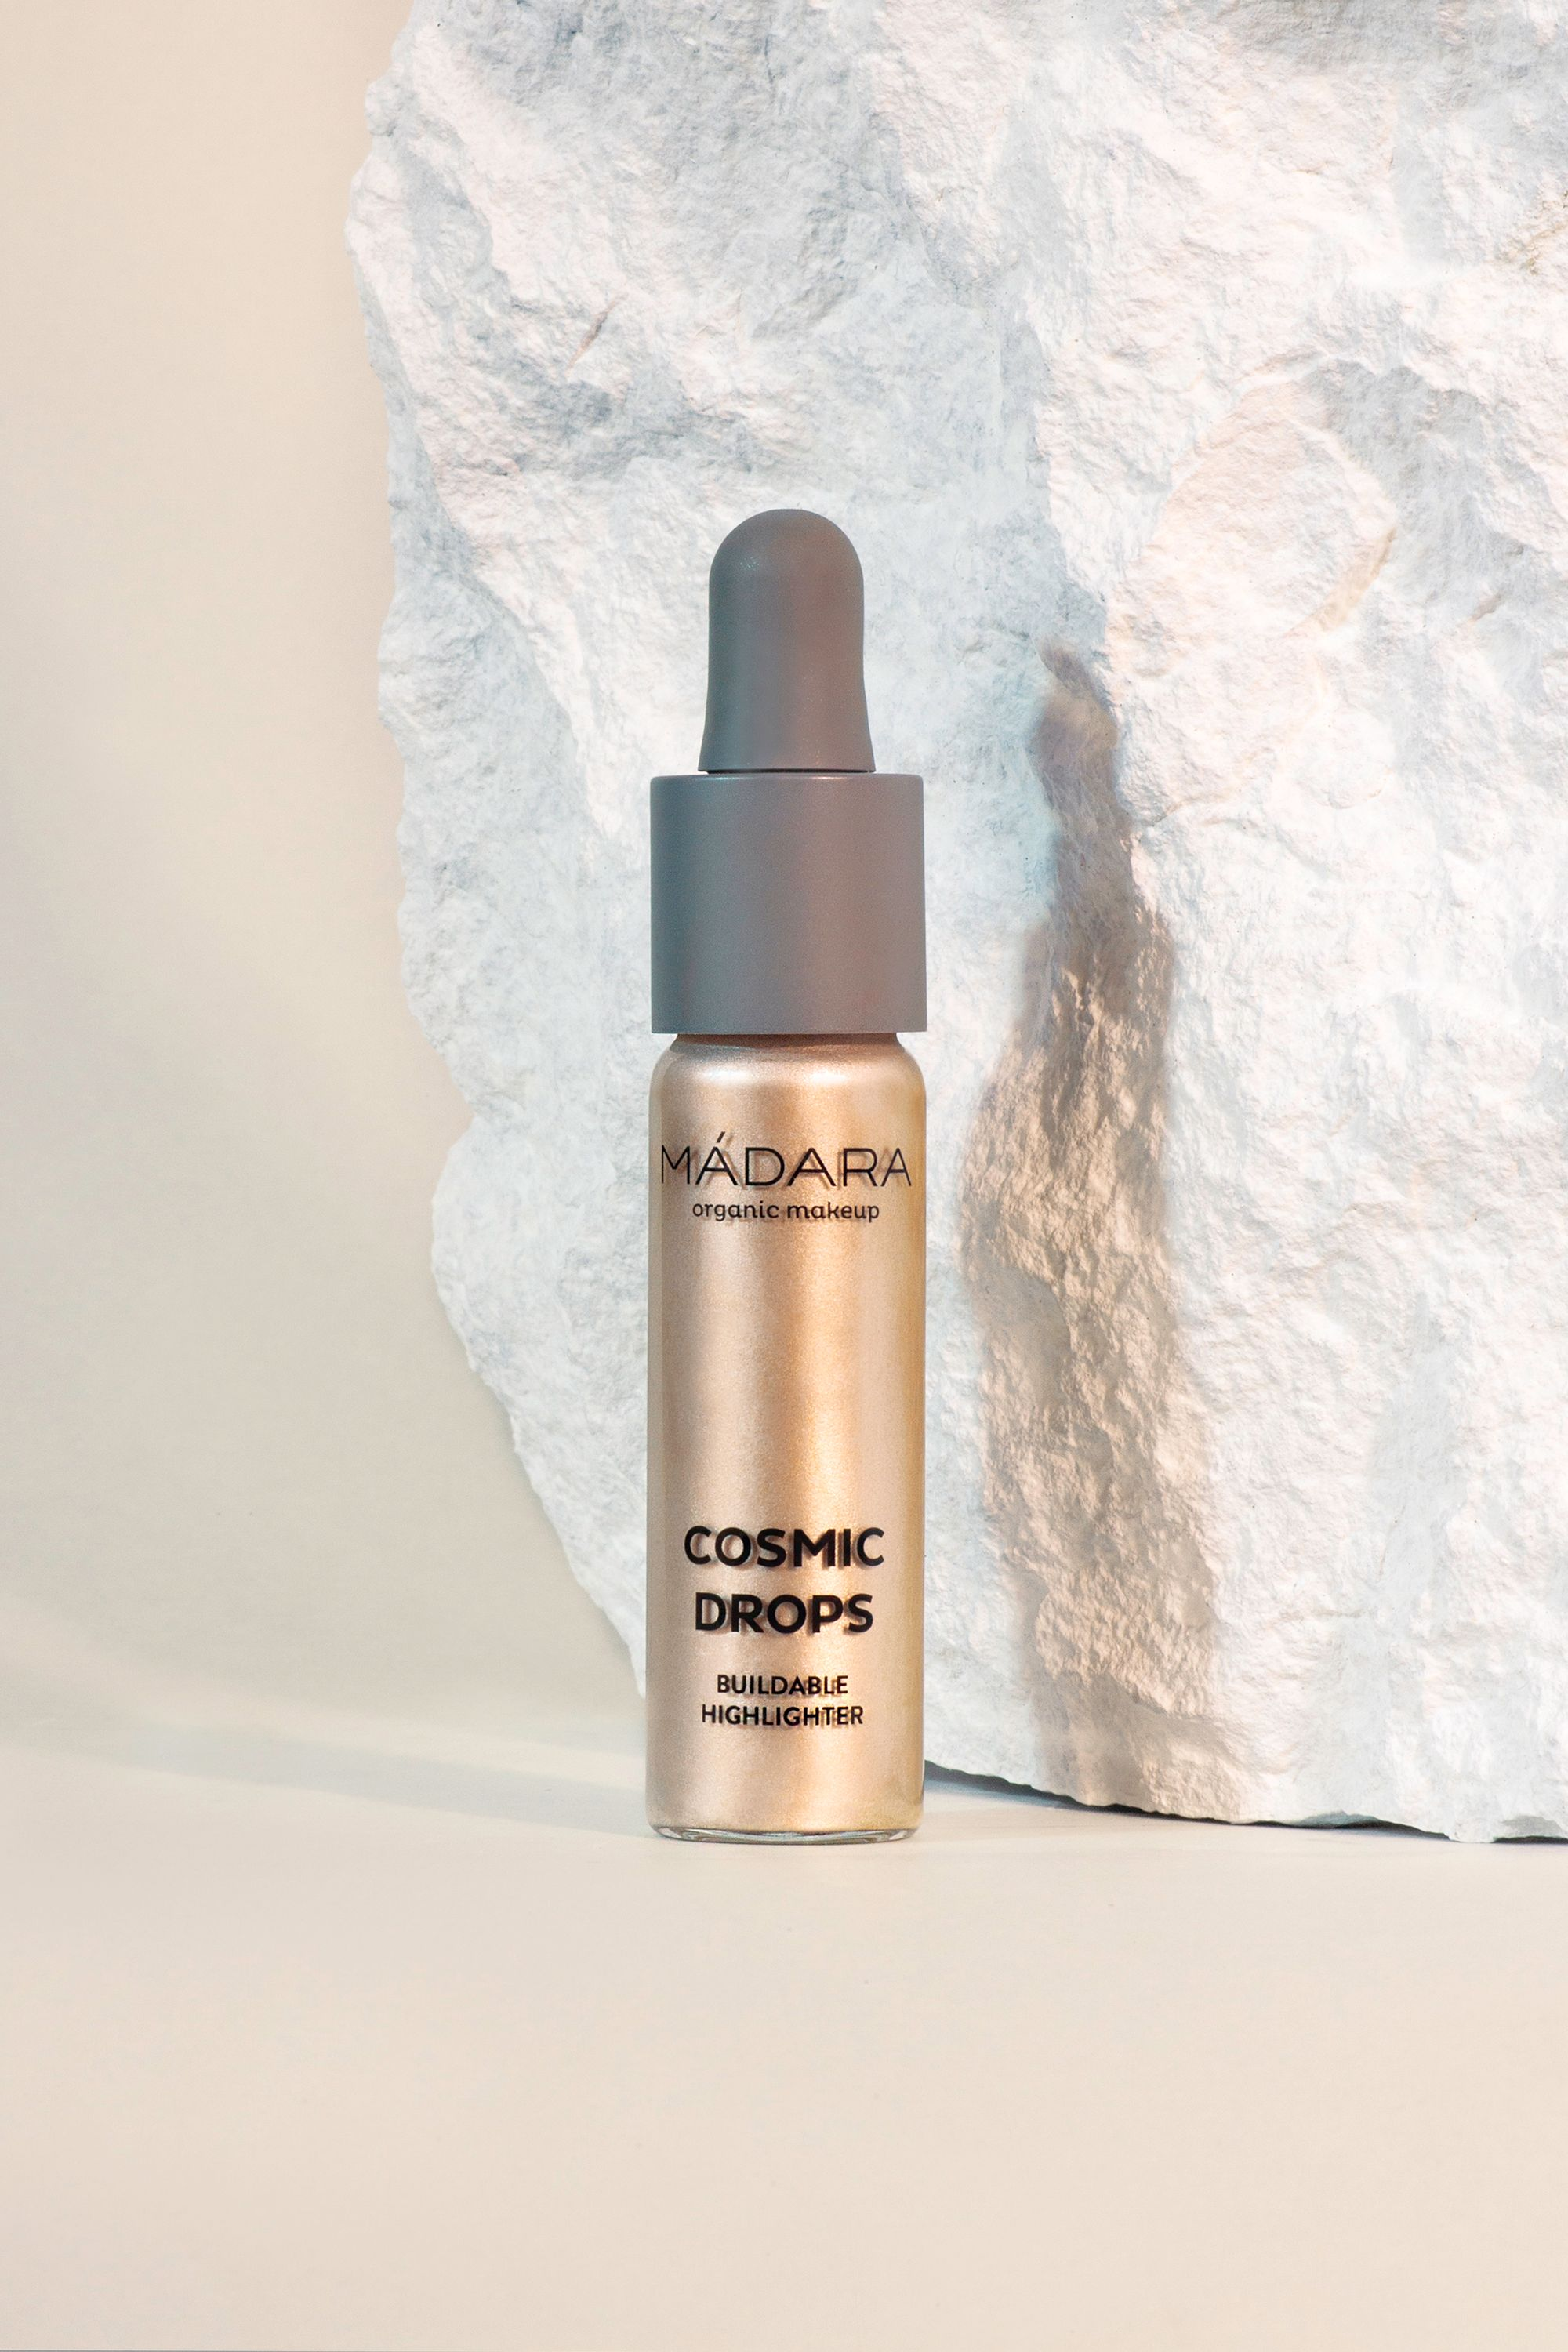 Blissim : Mádara Cosmetics - Highlighter liquide Cosmic Drops - 1 Naked Chrosmophere